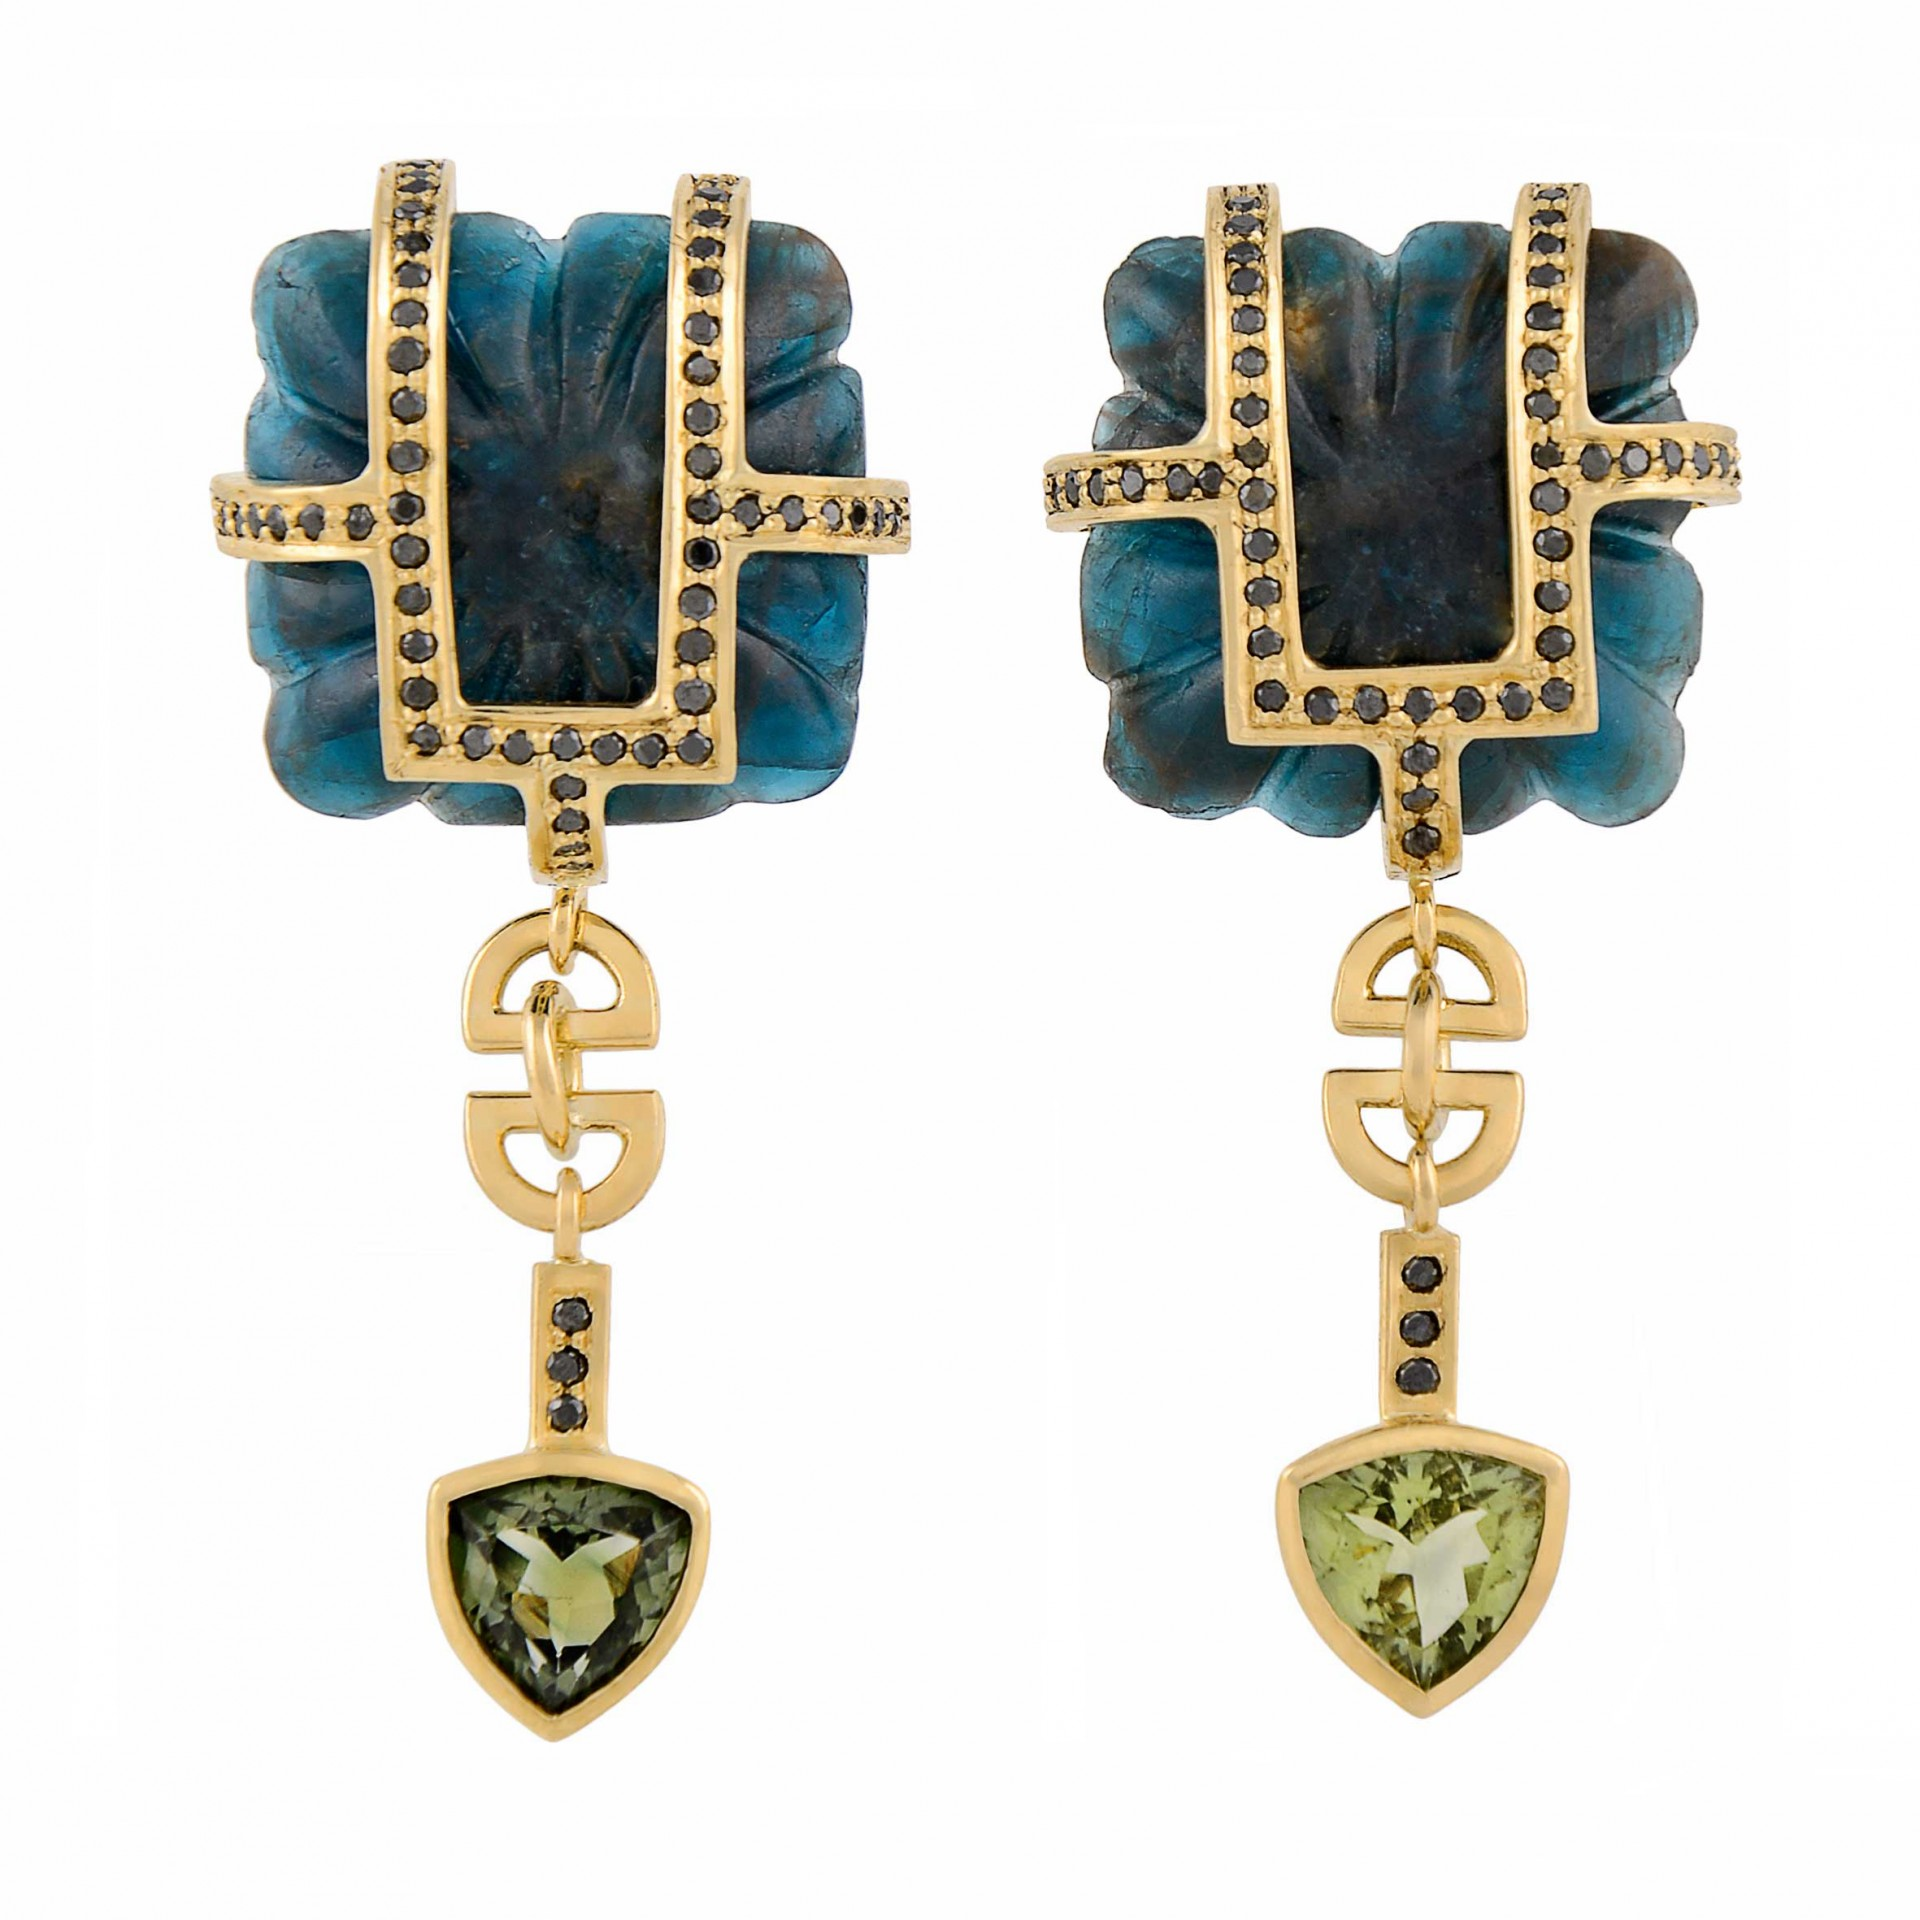 Concubine black diamond earrings, £11,400, Tessa Packard Jewellery.